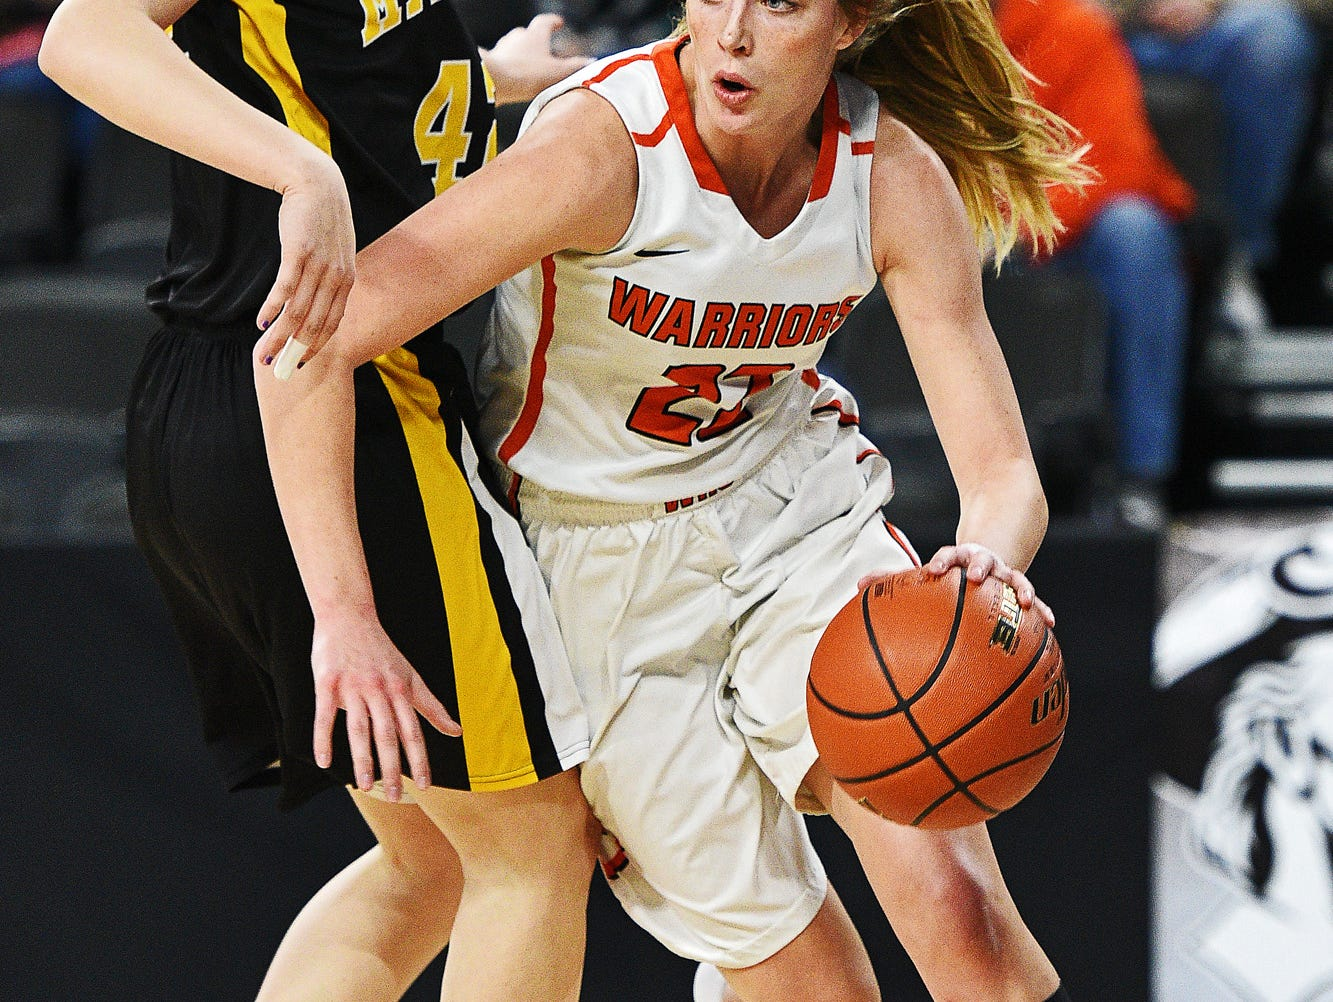 Washington's Anna Goodhope (22) drives past Mitchell's Mackenzie Miller (42) during a South Dakota Class AA State Girls Basketball Tournament quarterfinal game Thursday, March 17, 2016, at the Denny Sanford Premier Center in Sioux Falls.